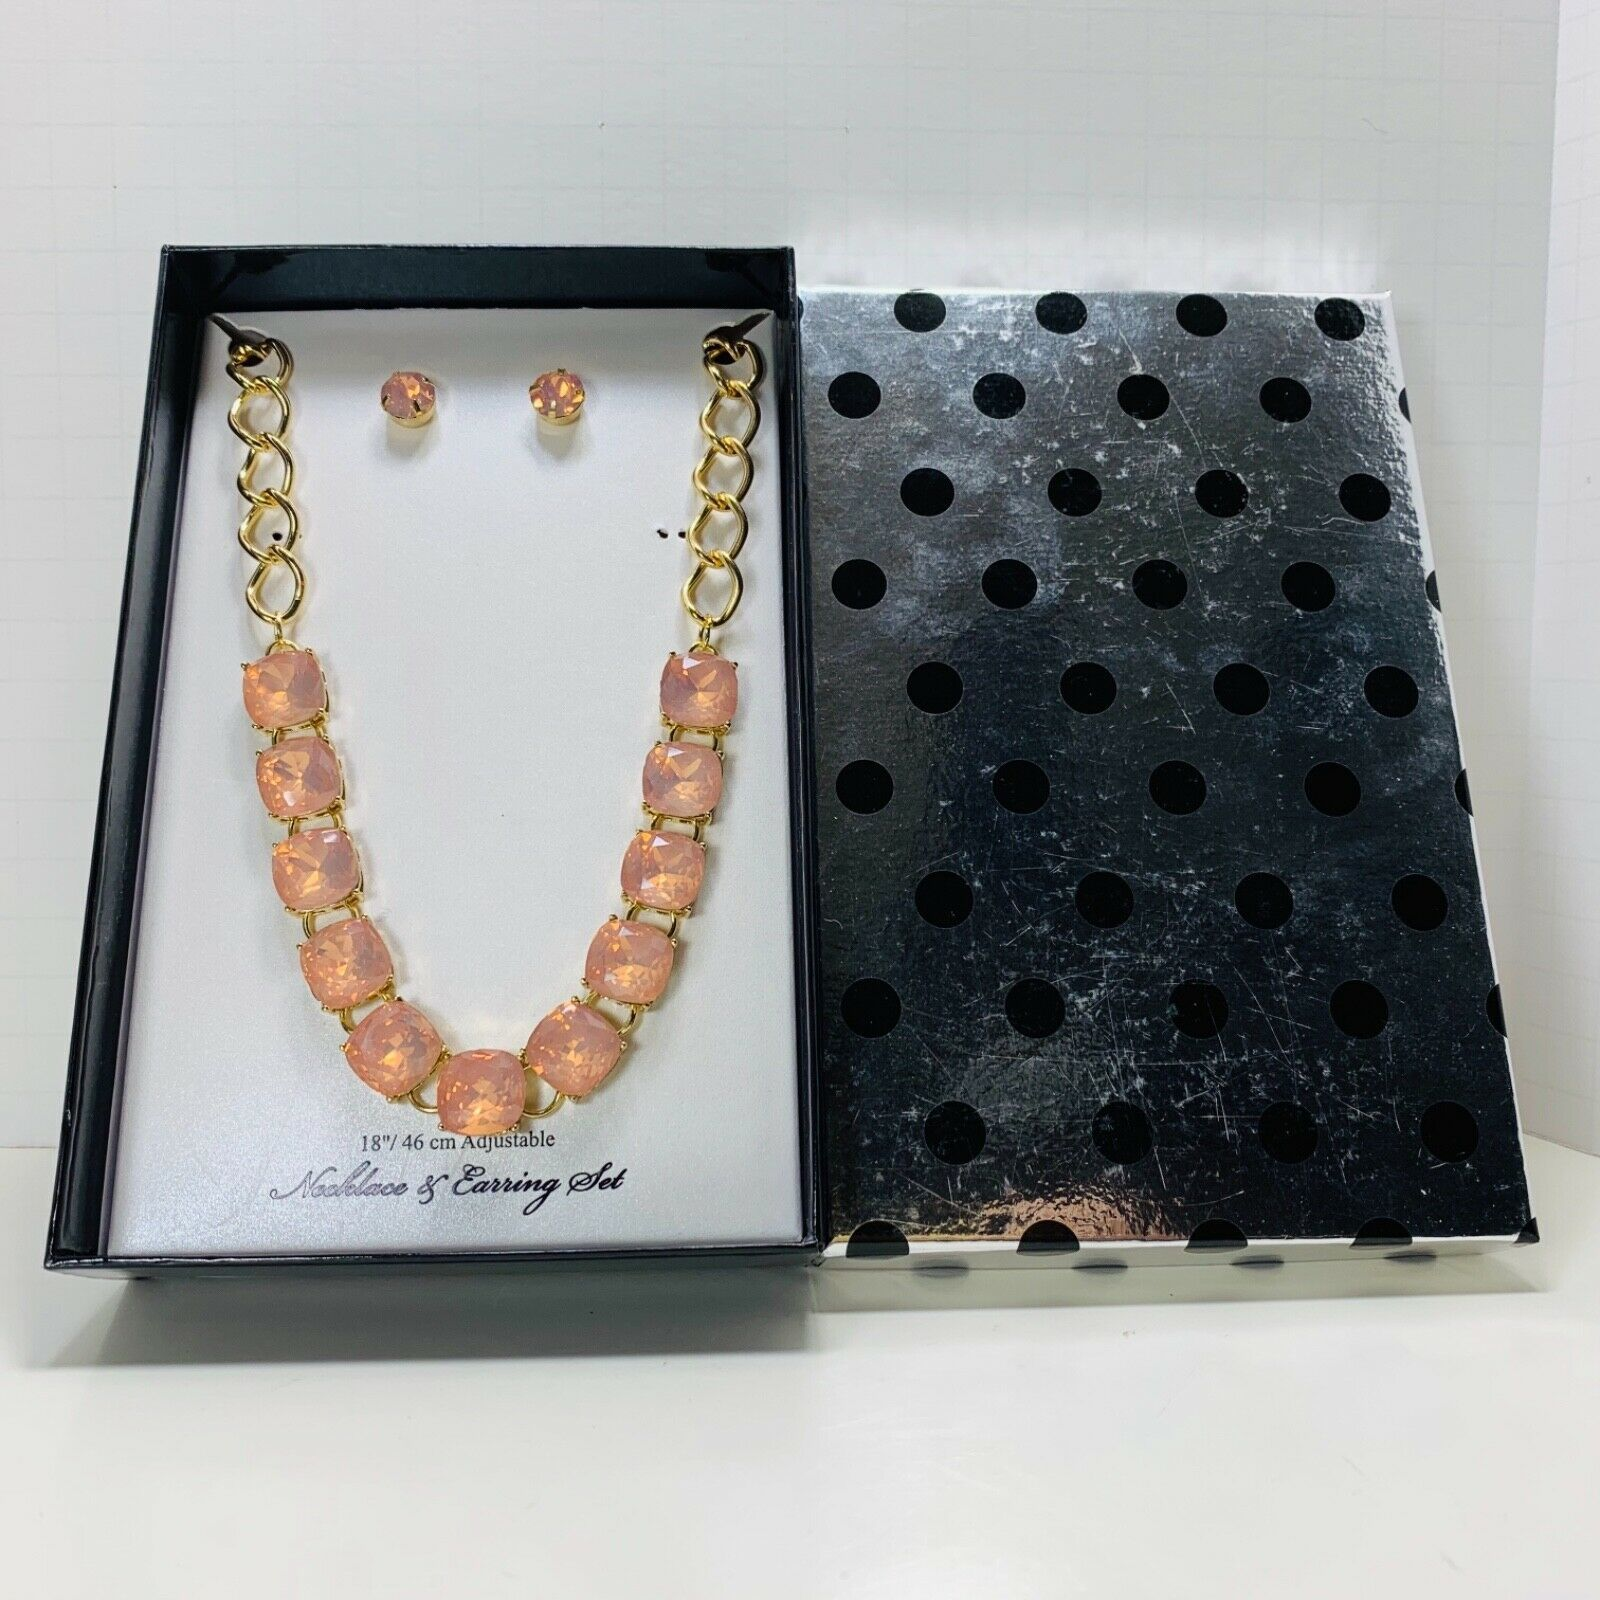 Primary image for Fashion Necklace and Earring Set Acrylic Peach Color